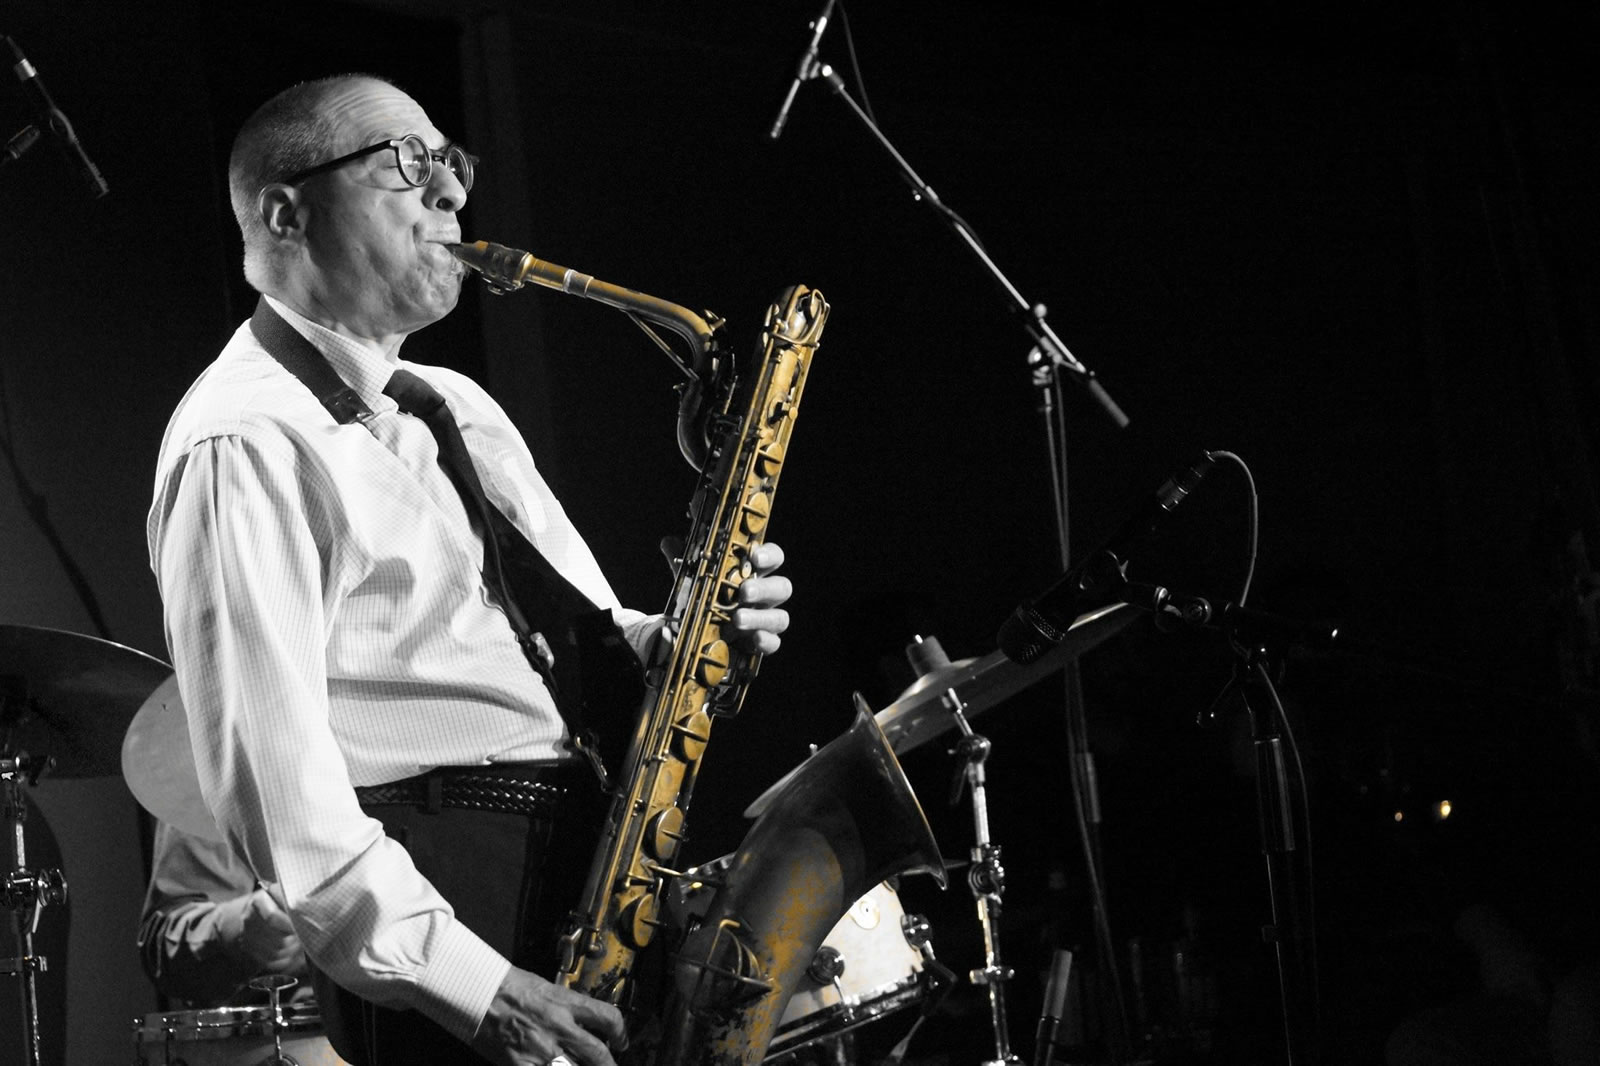 Gary Smulyan | Winner of the 2015 Downbeat Reader's Poll for